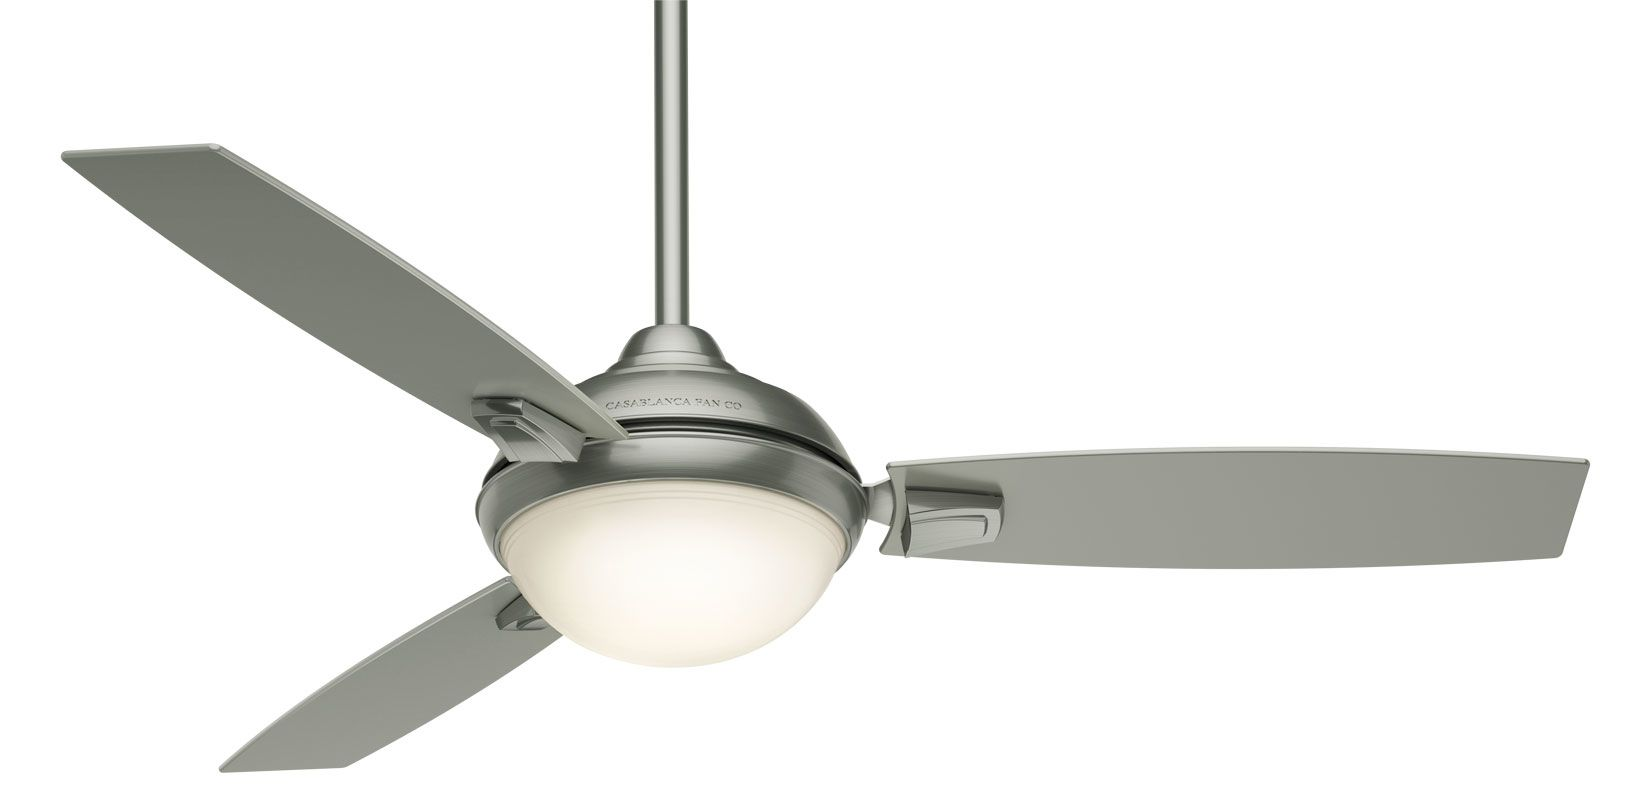 "Casablanca Verse 54 Verse 54"" 3 Blade Ceiling Fan with LED Light Kit Sale $339.00 ITEM: bci2903985 ID#:59160 UPC: 49694591609 :"